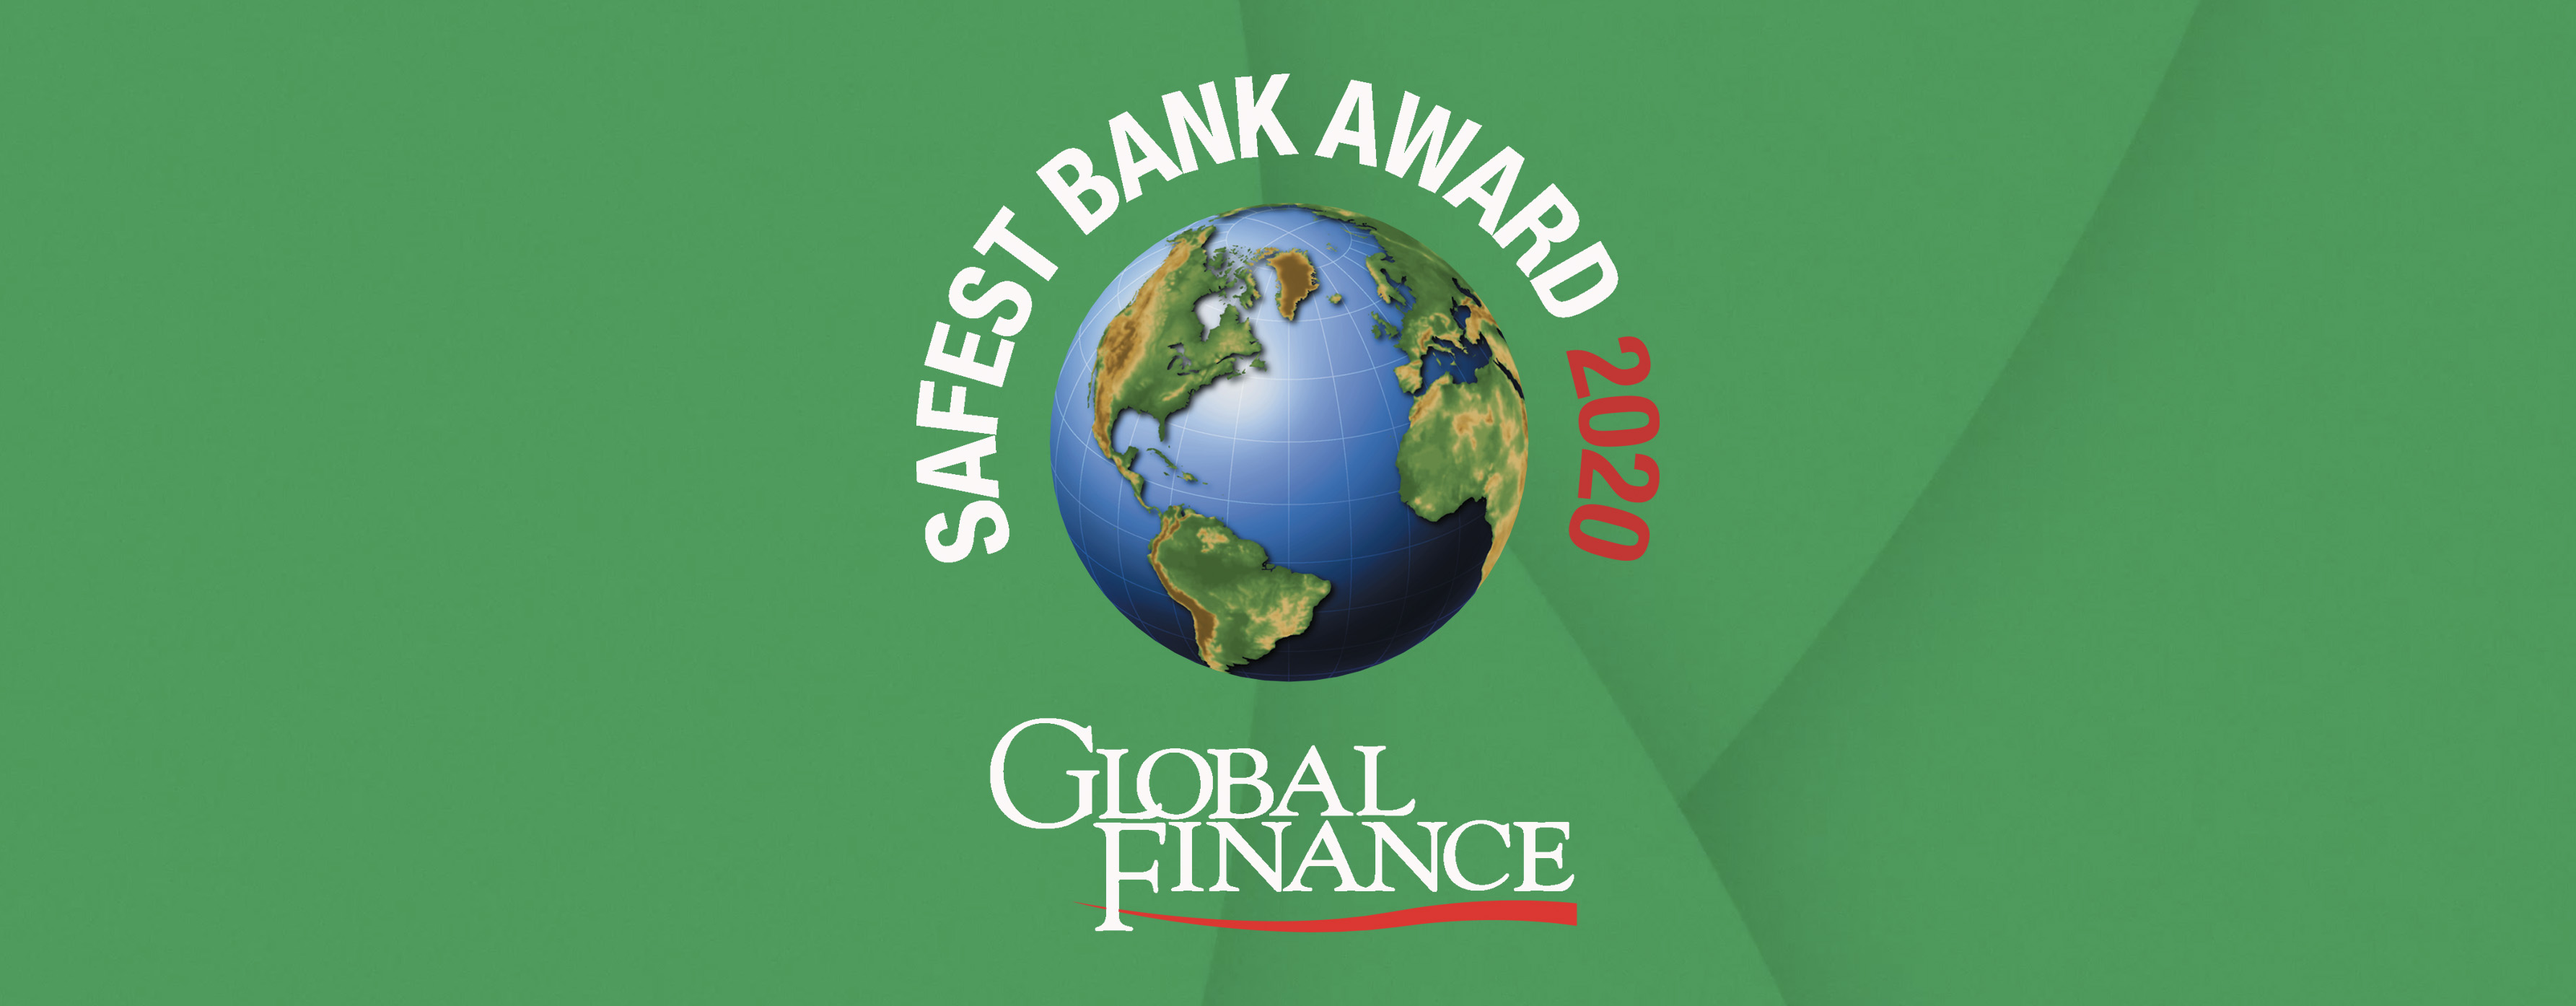 Global Finance's World's Safest Banks 2020 Virtual Presentation